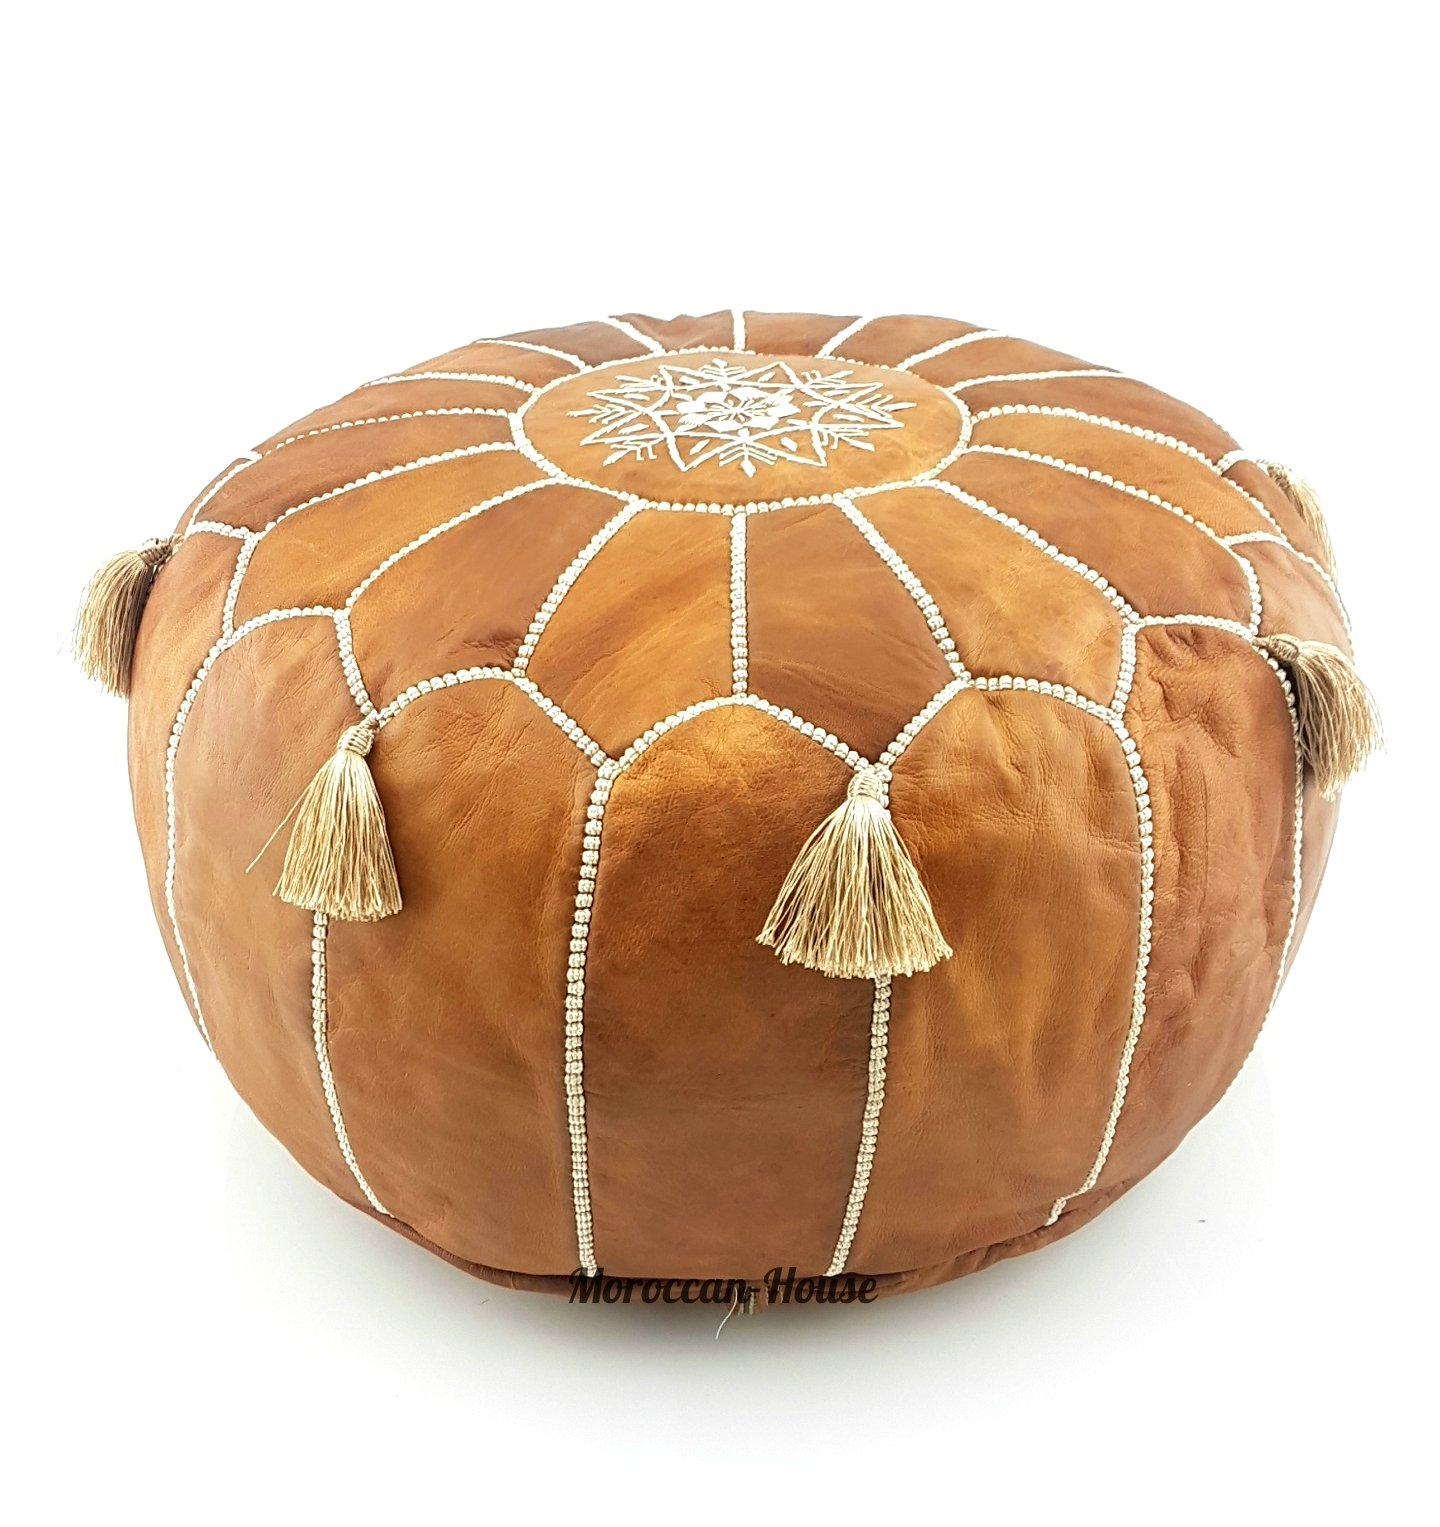 LIMITED EDITION Moroccan Leather Pouf Best offer ,100% handmade Ready to magic your living room! by Moroccan-House (Image #1)